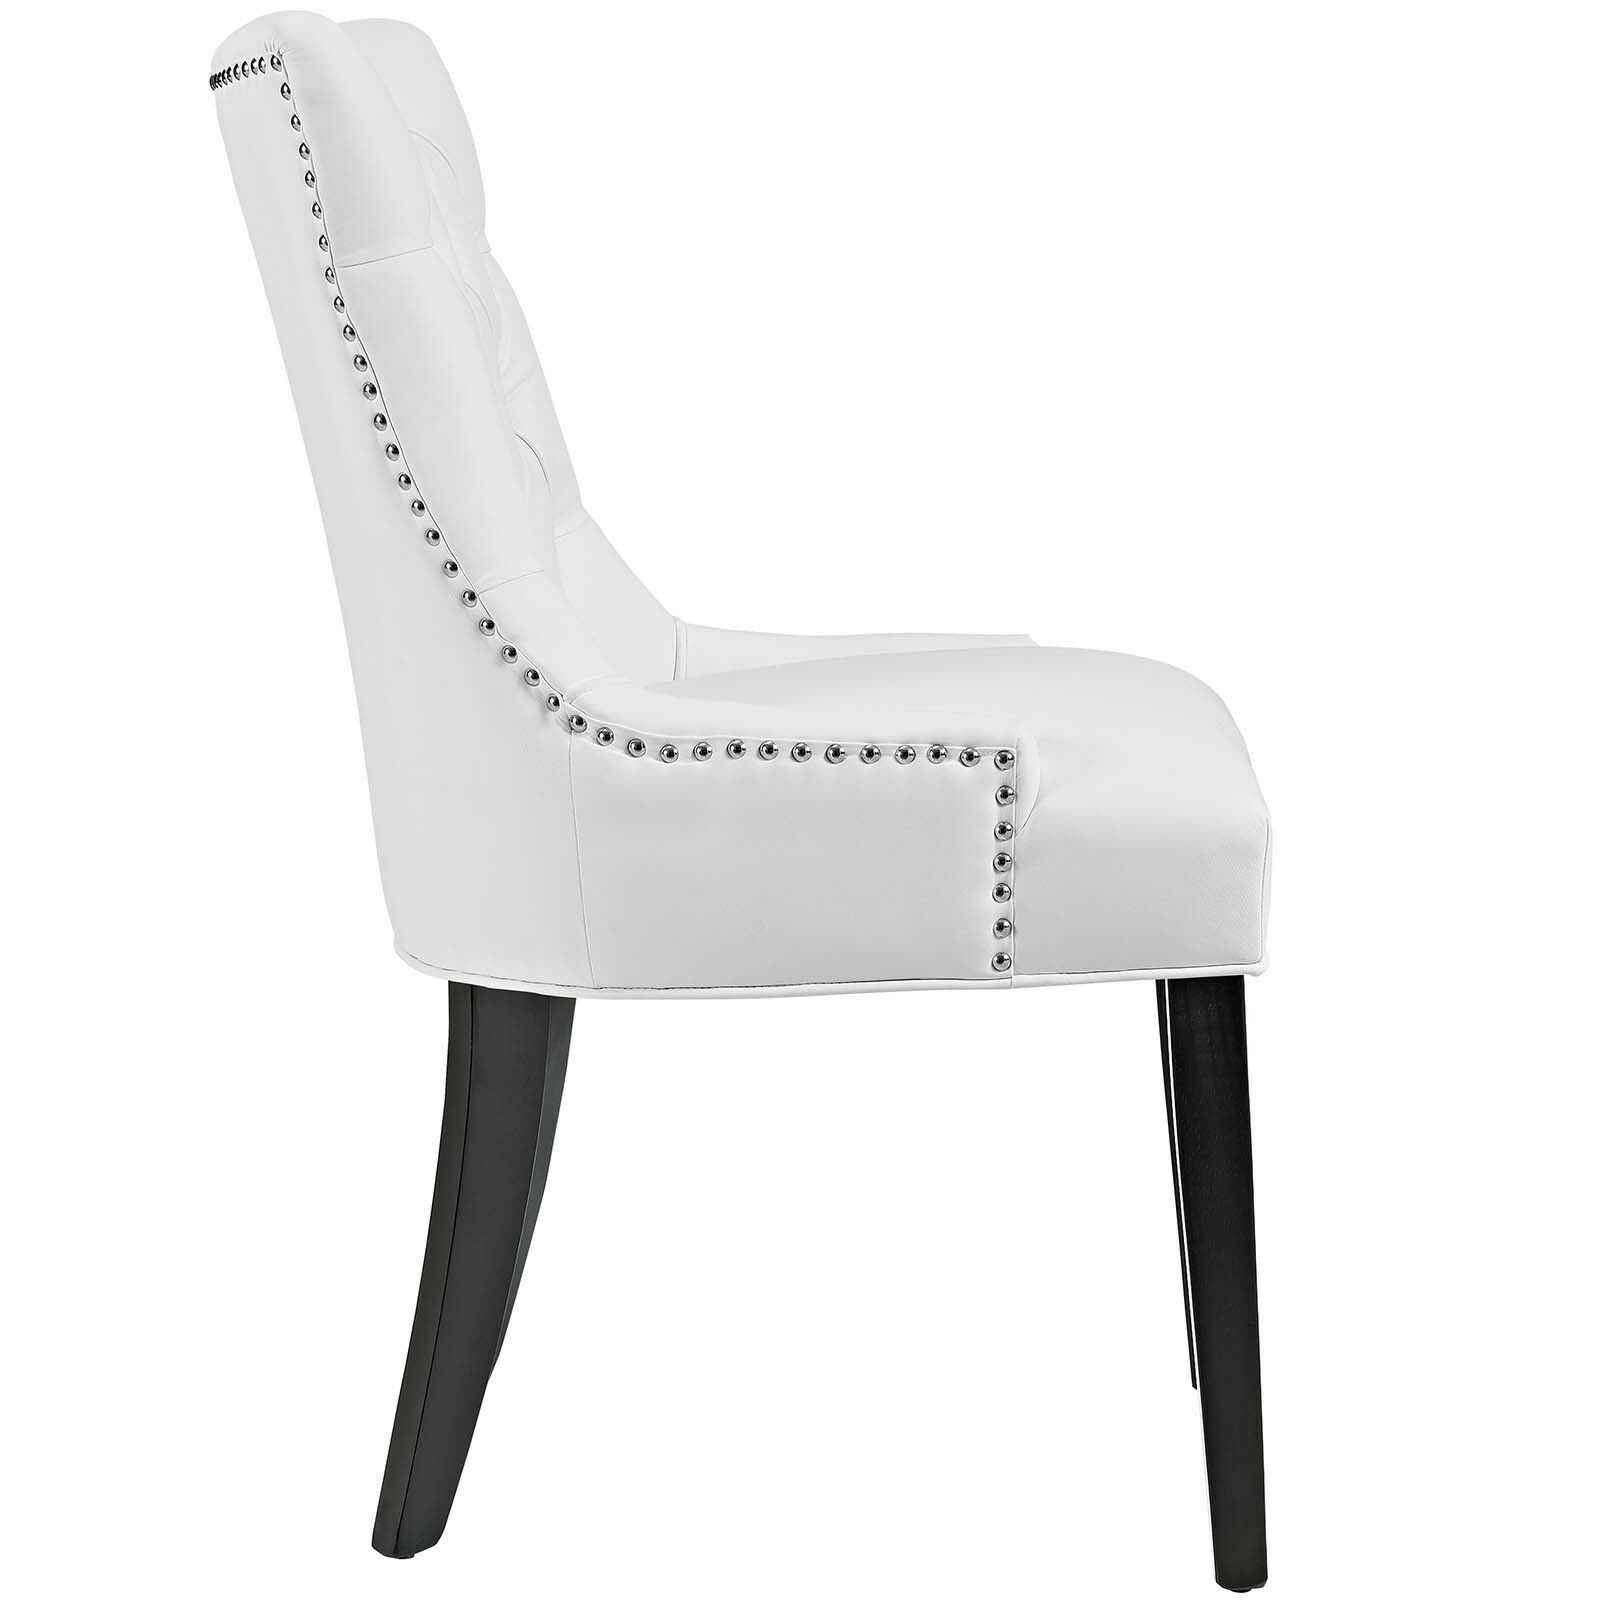 Tufted White Upholstered Faux Leather Nailhead Parsons ...